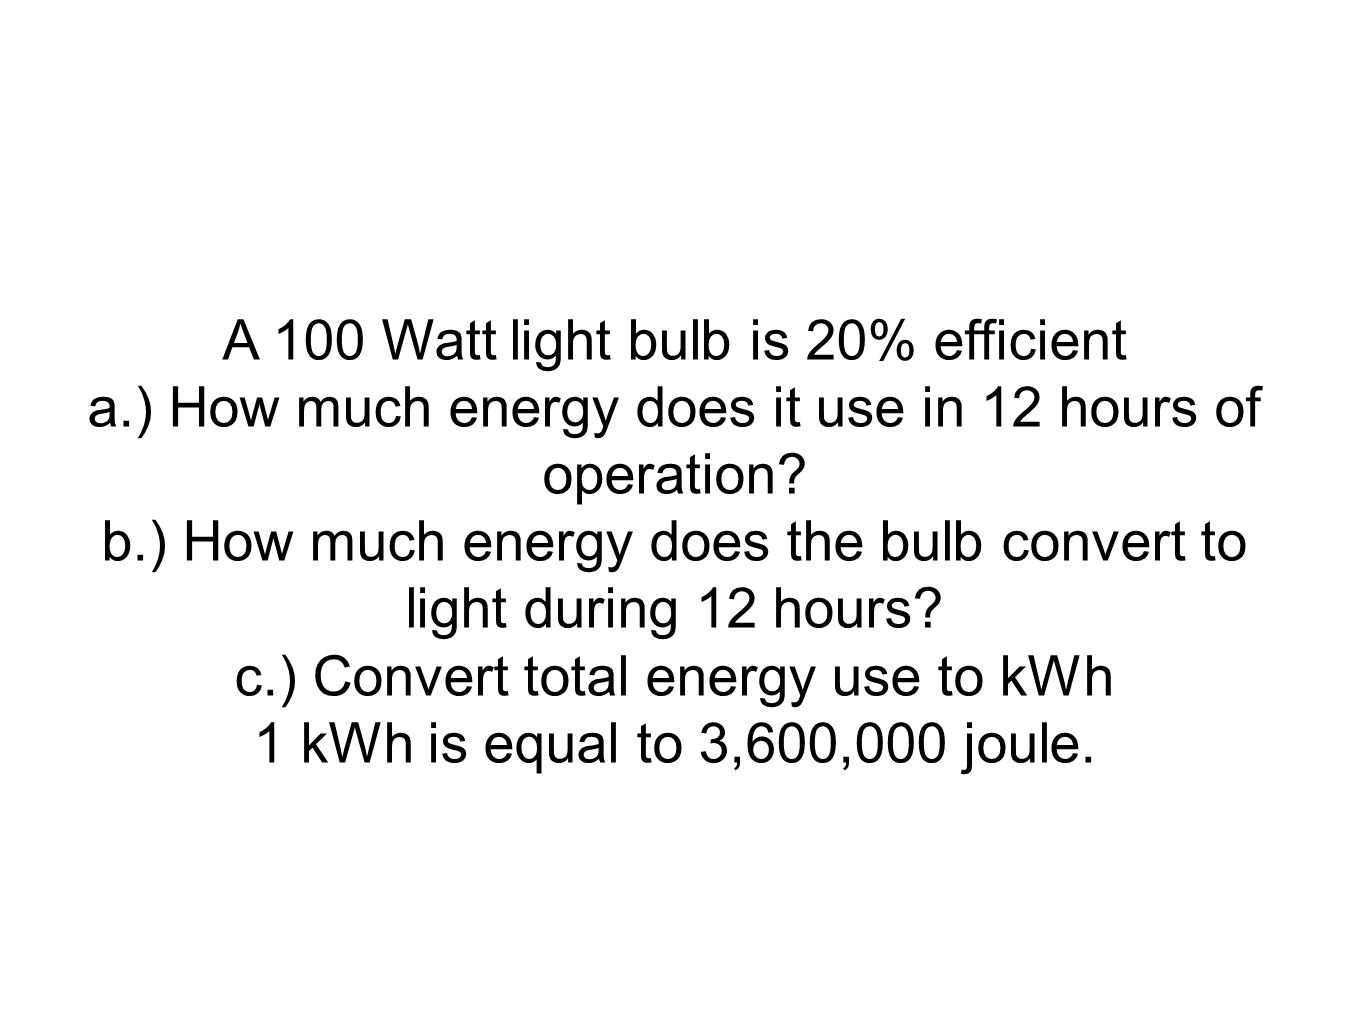 A 100 Watt light bulb is 20% efficient